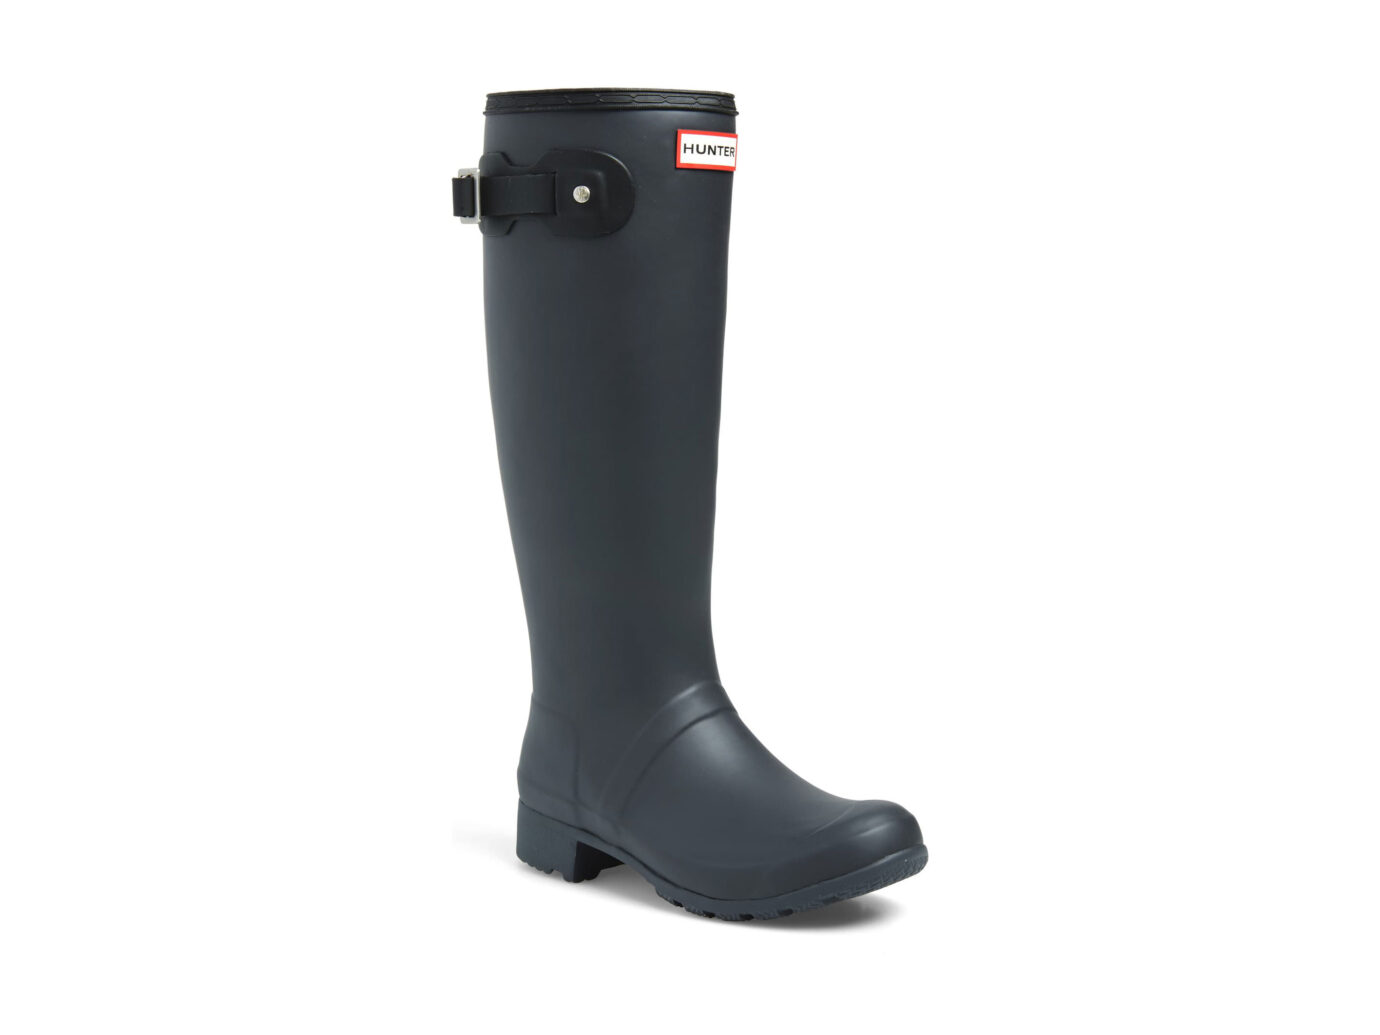 Hunter Tour Packable Waterproof Rain Boot